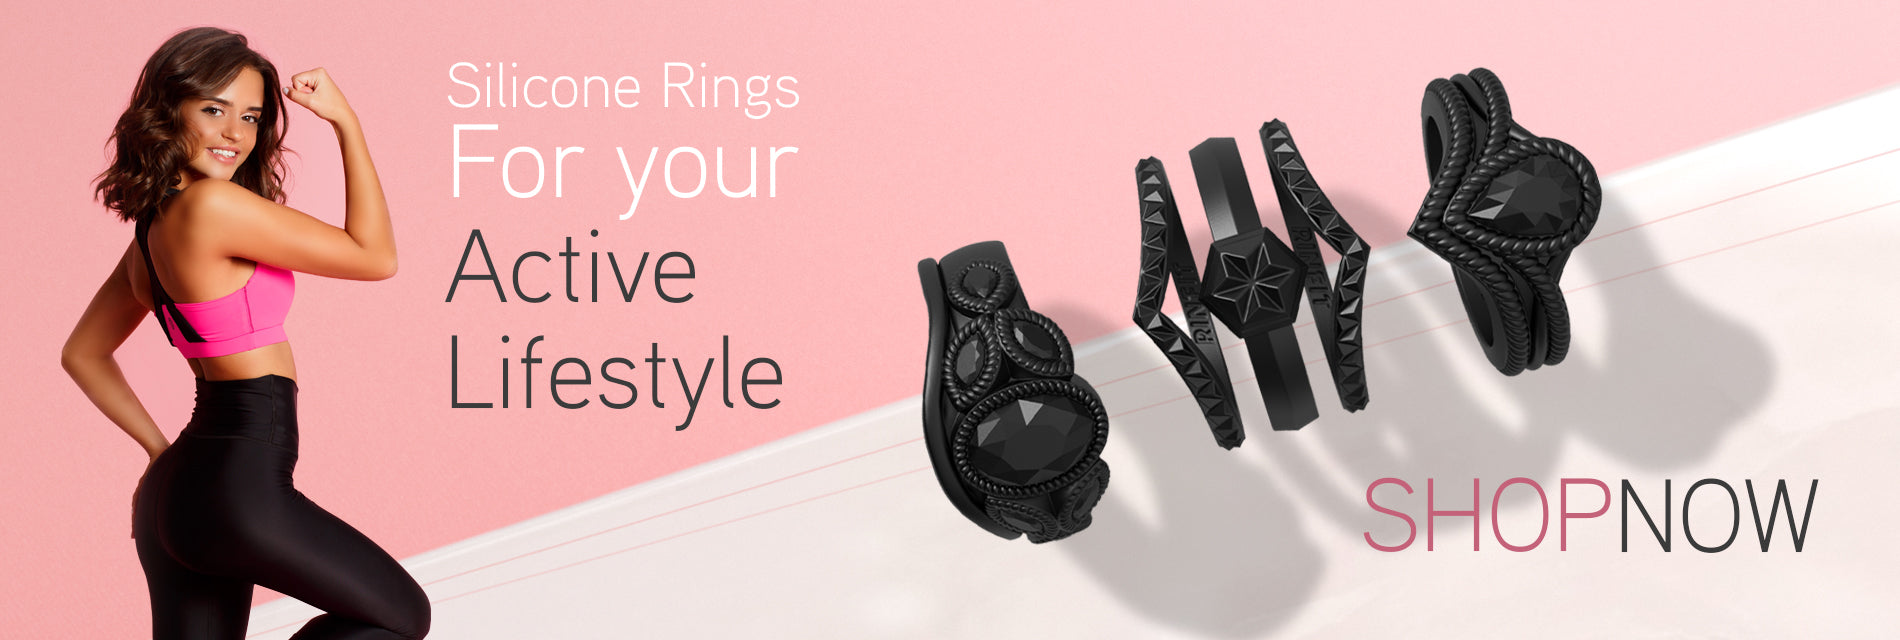 Silicone rings are here to stay!